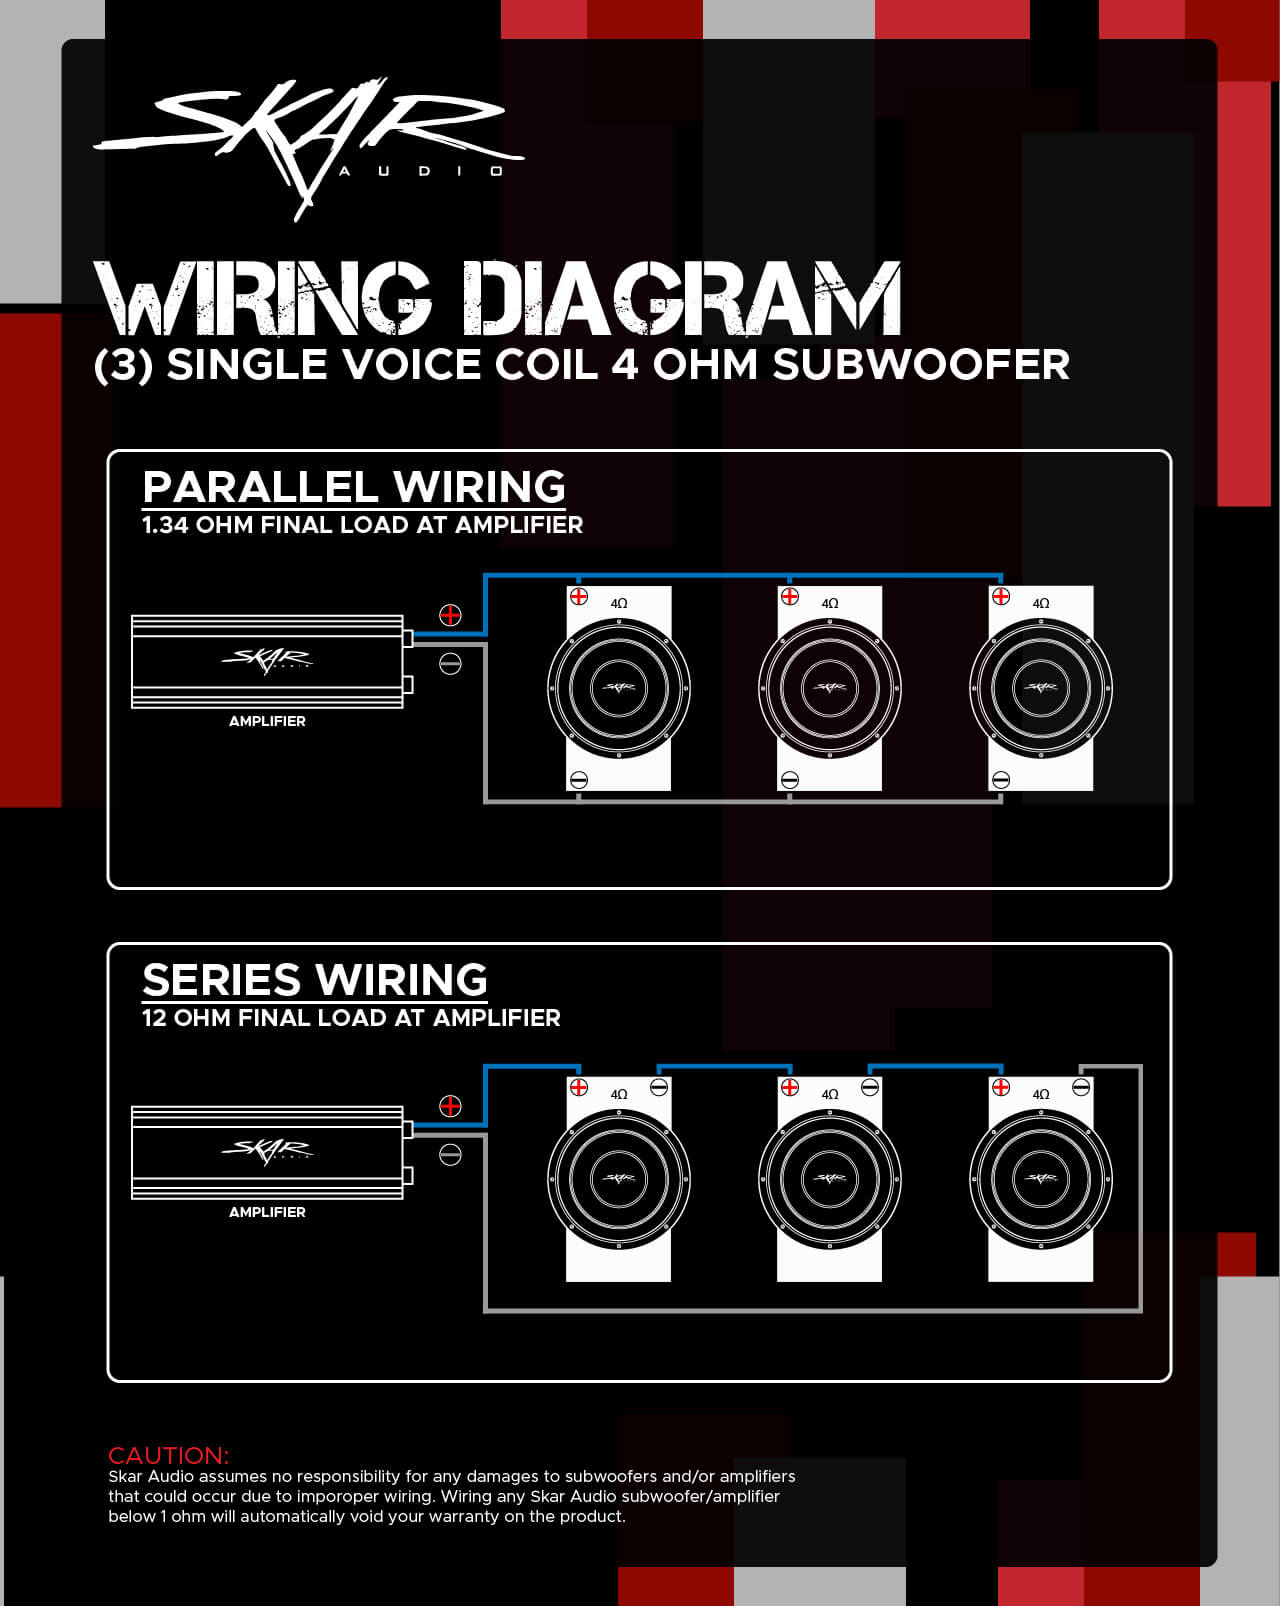 Single Subwoofer Wiring Diagram from cdn.shopify.com